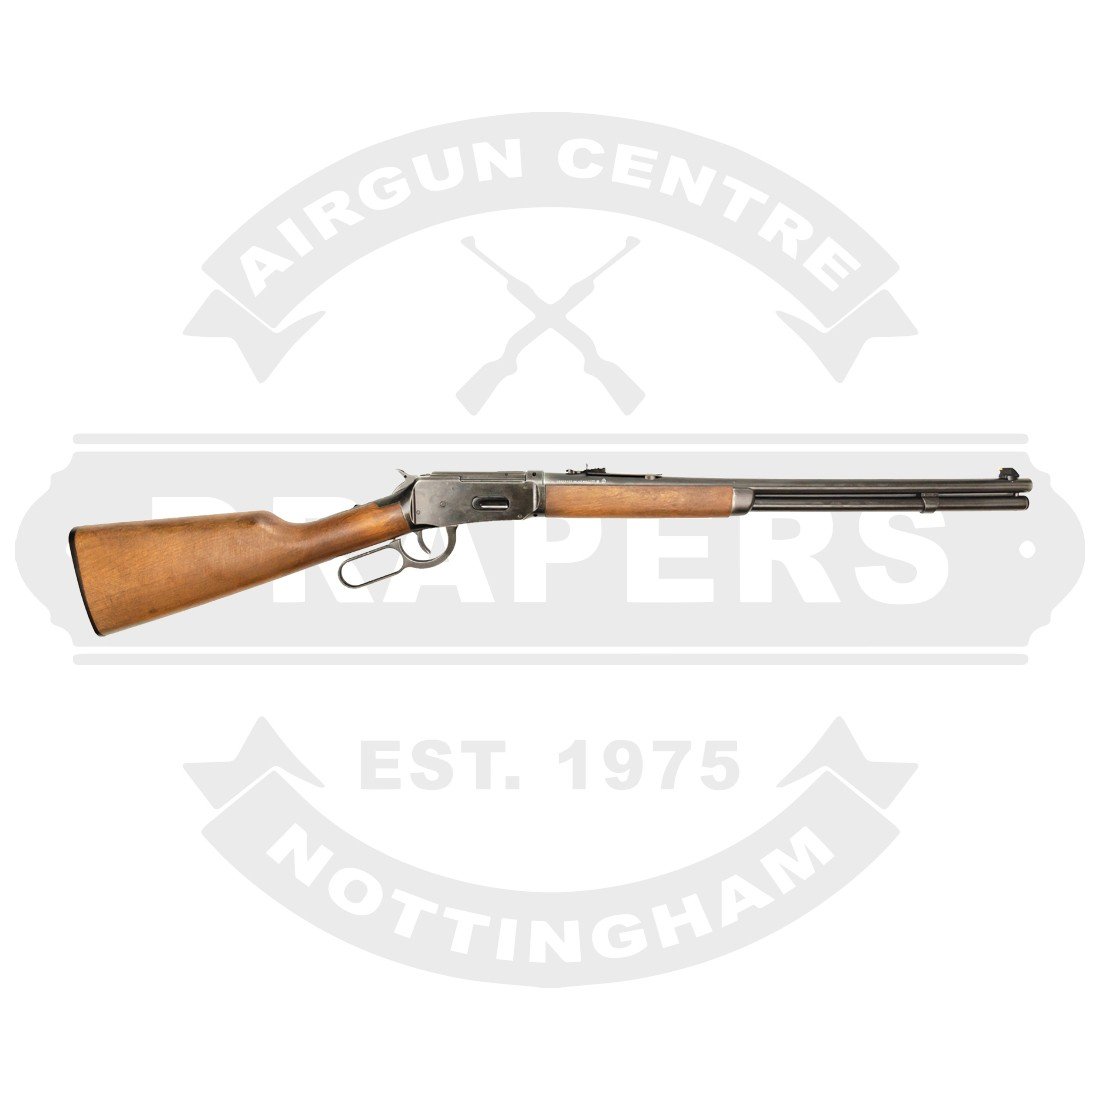 Umarex Legends Cowboy Rifle Shell Ejecting 4 5mm BB - Air Rifles New